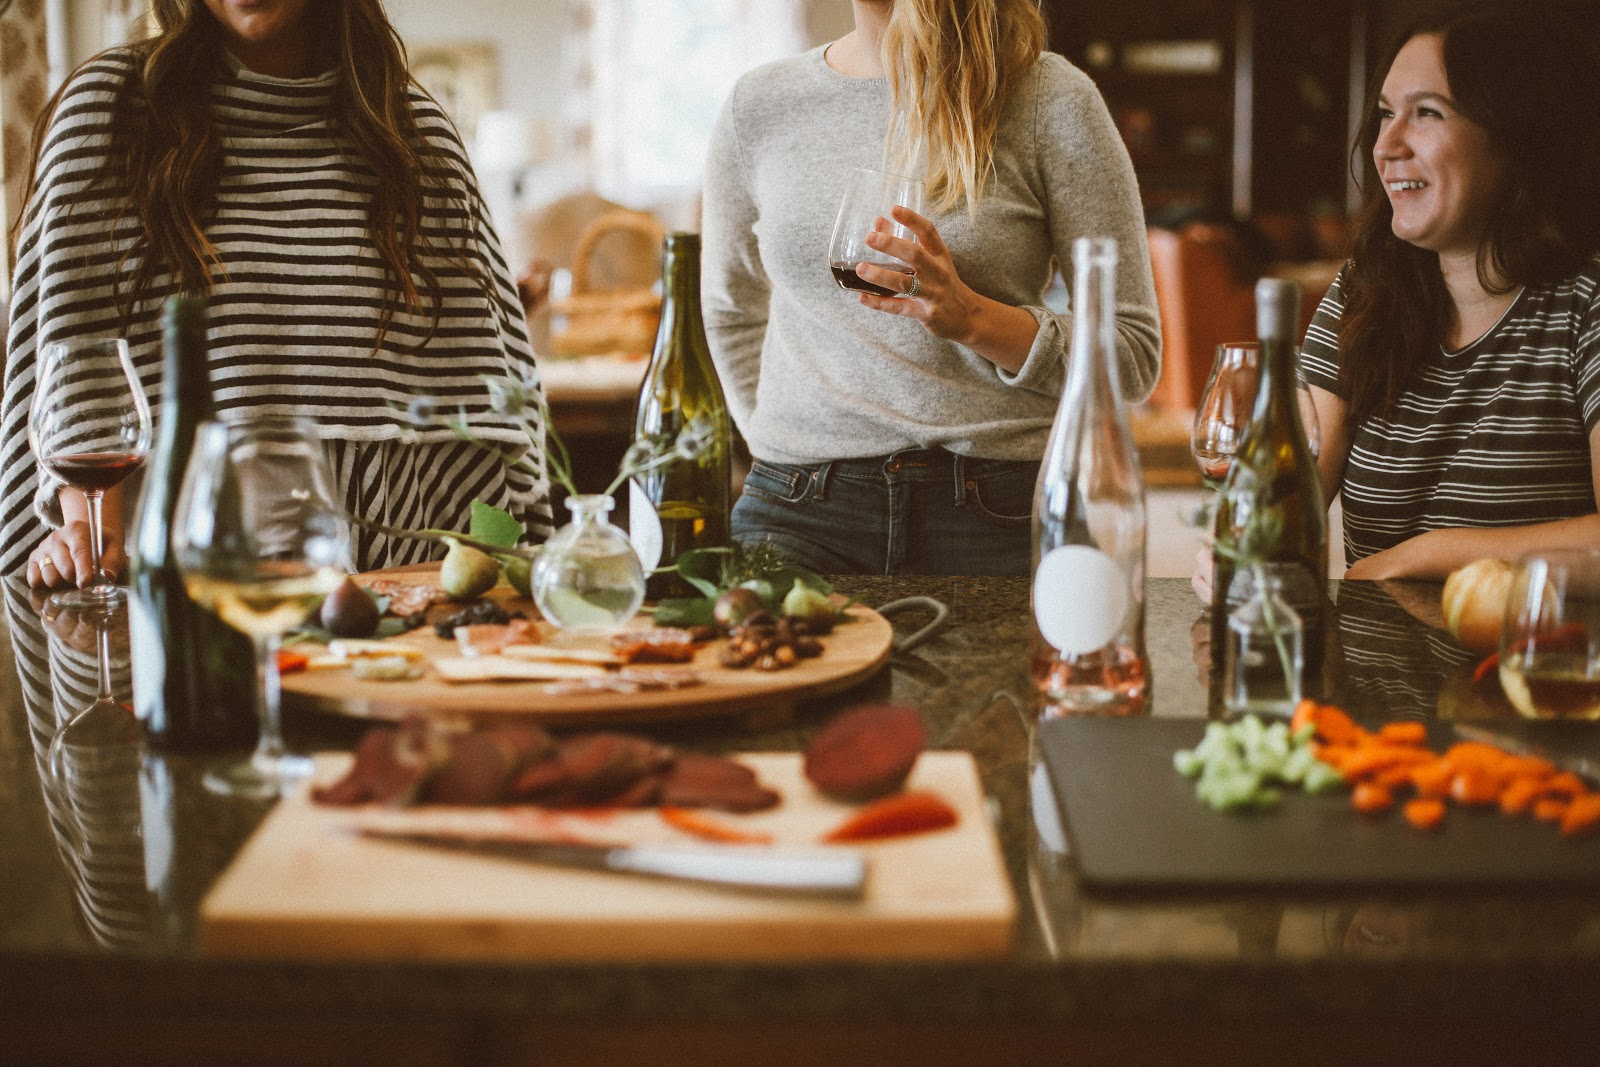 women enjoying wine with food